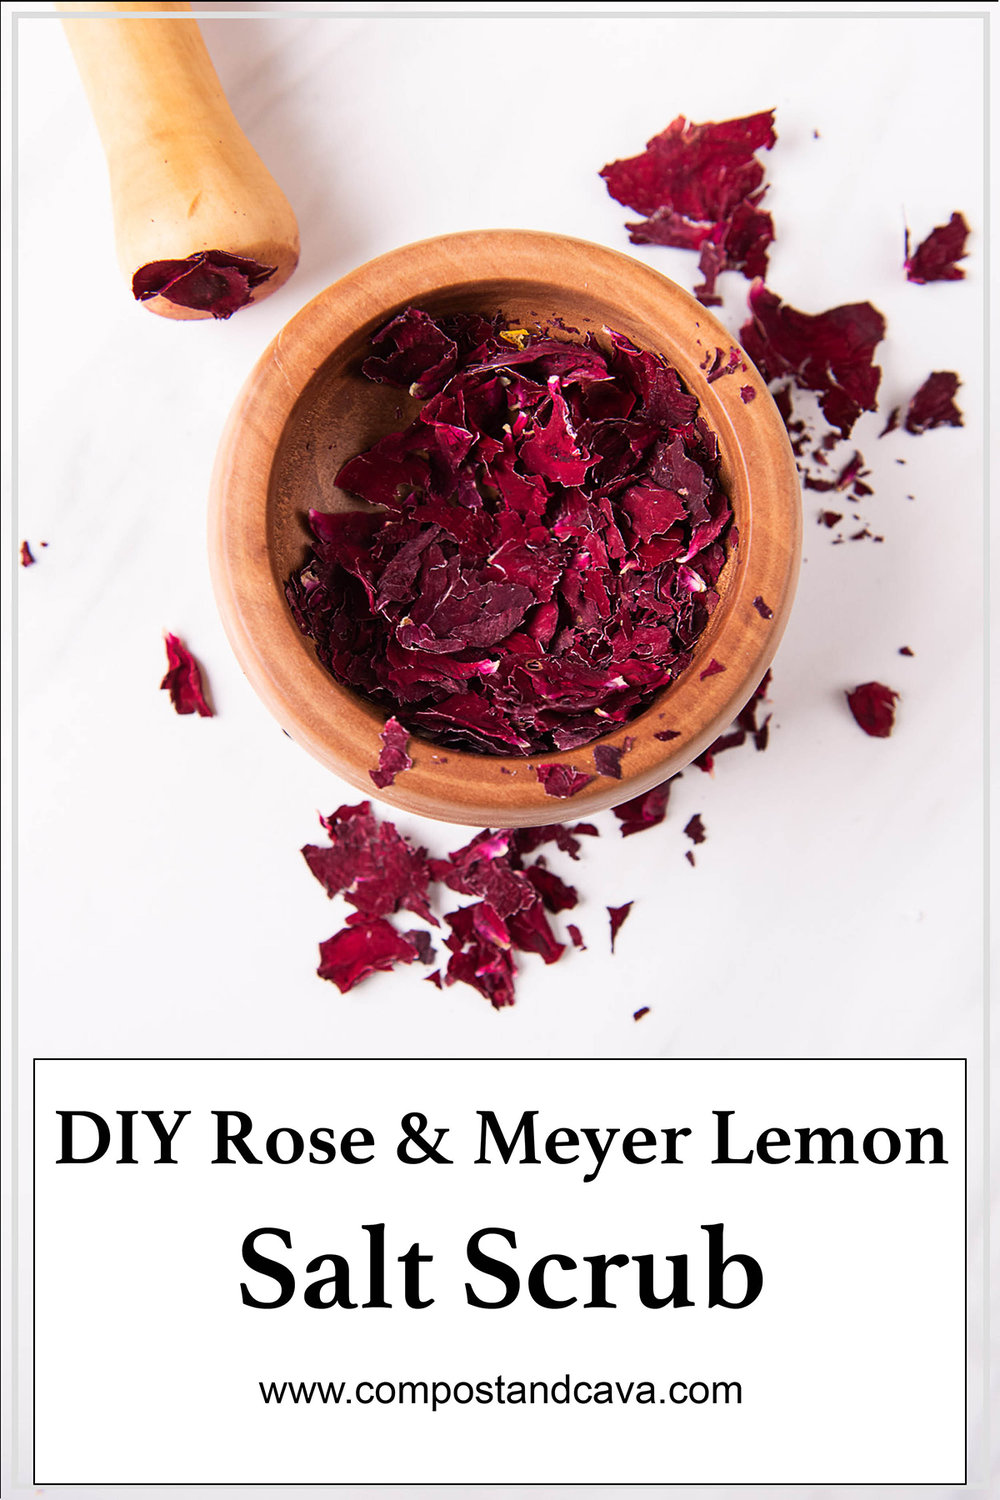 Upcycle Valentine's Bouquet into DIY Rose and Meyer Lemon Salt Scrub for Your Natural Beauty Routine